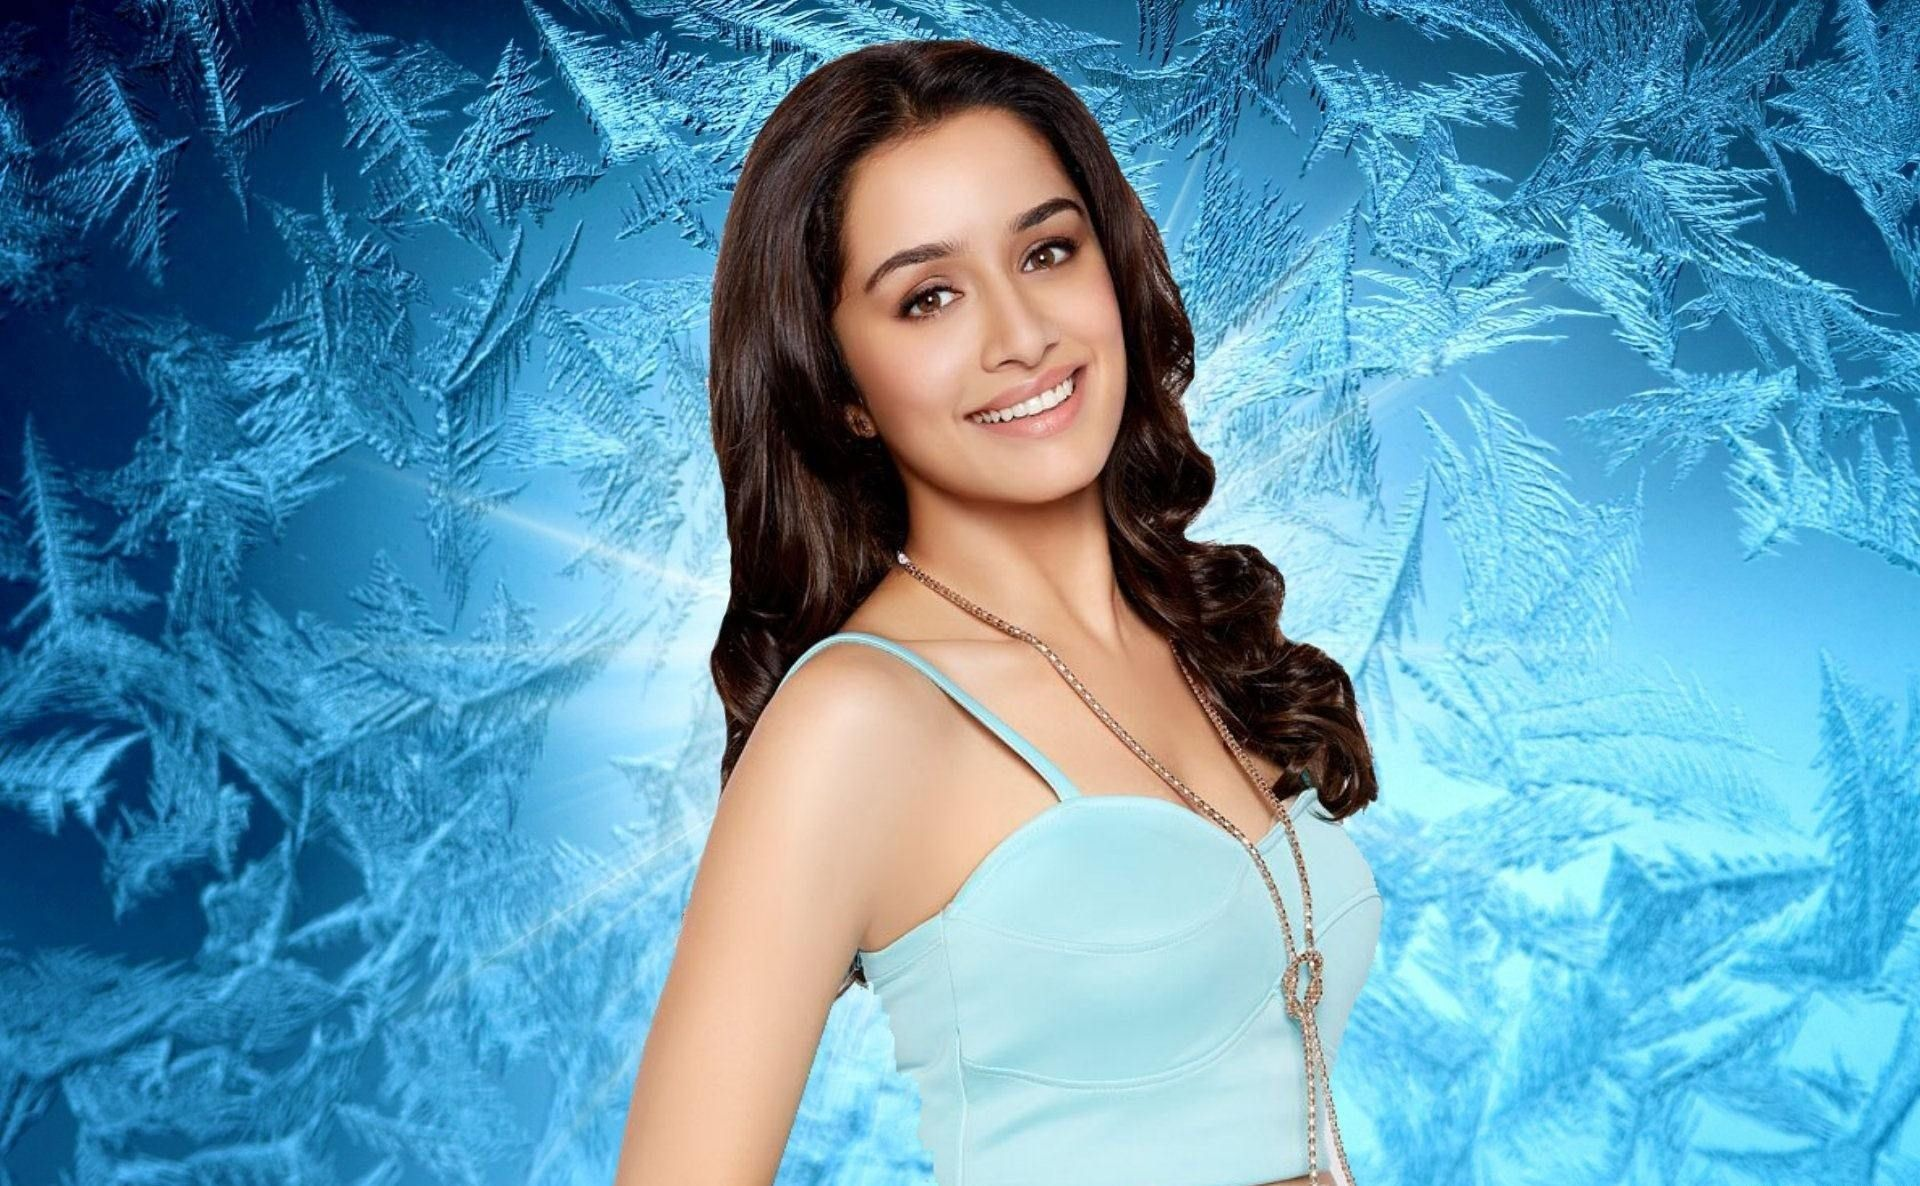 best hd walls of shraddha kapoor, hd quality shraddha kapoor 1280